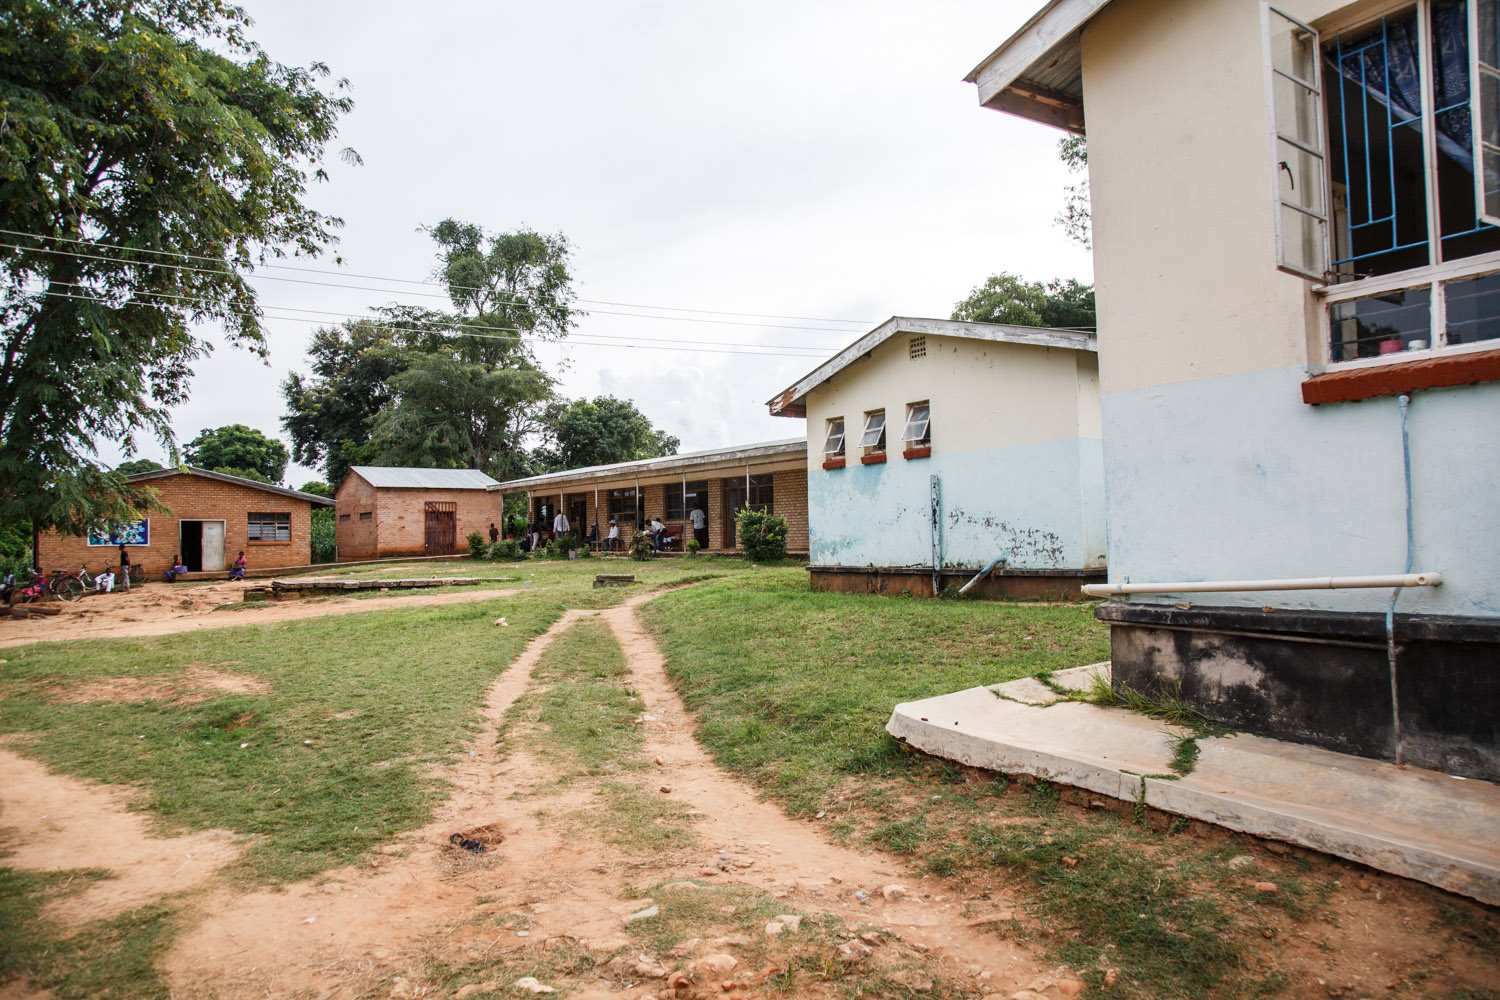 Chintheche Rural Hospital in Nkhata Bay district in north Malawi